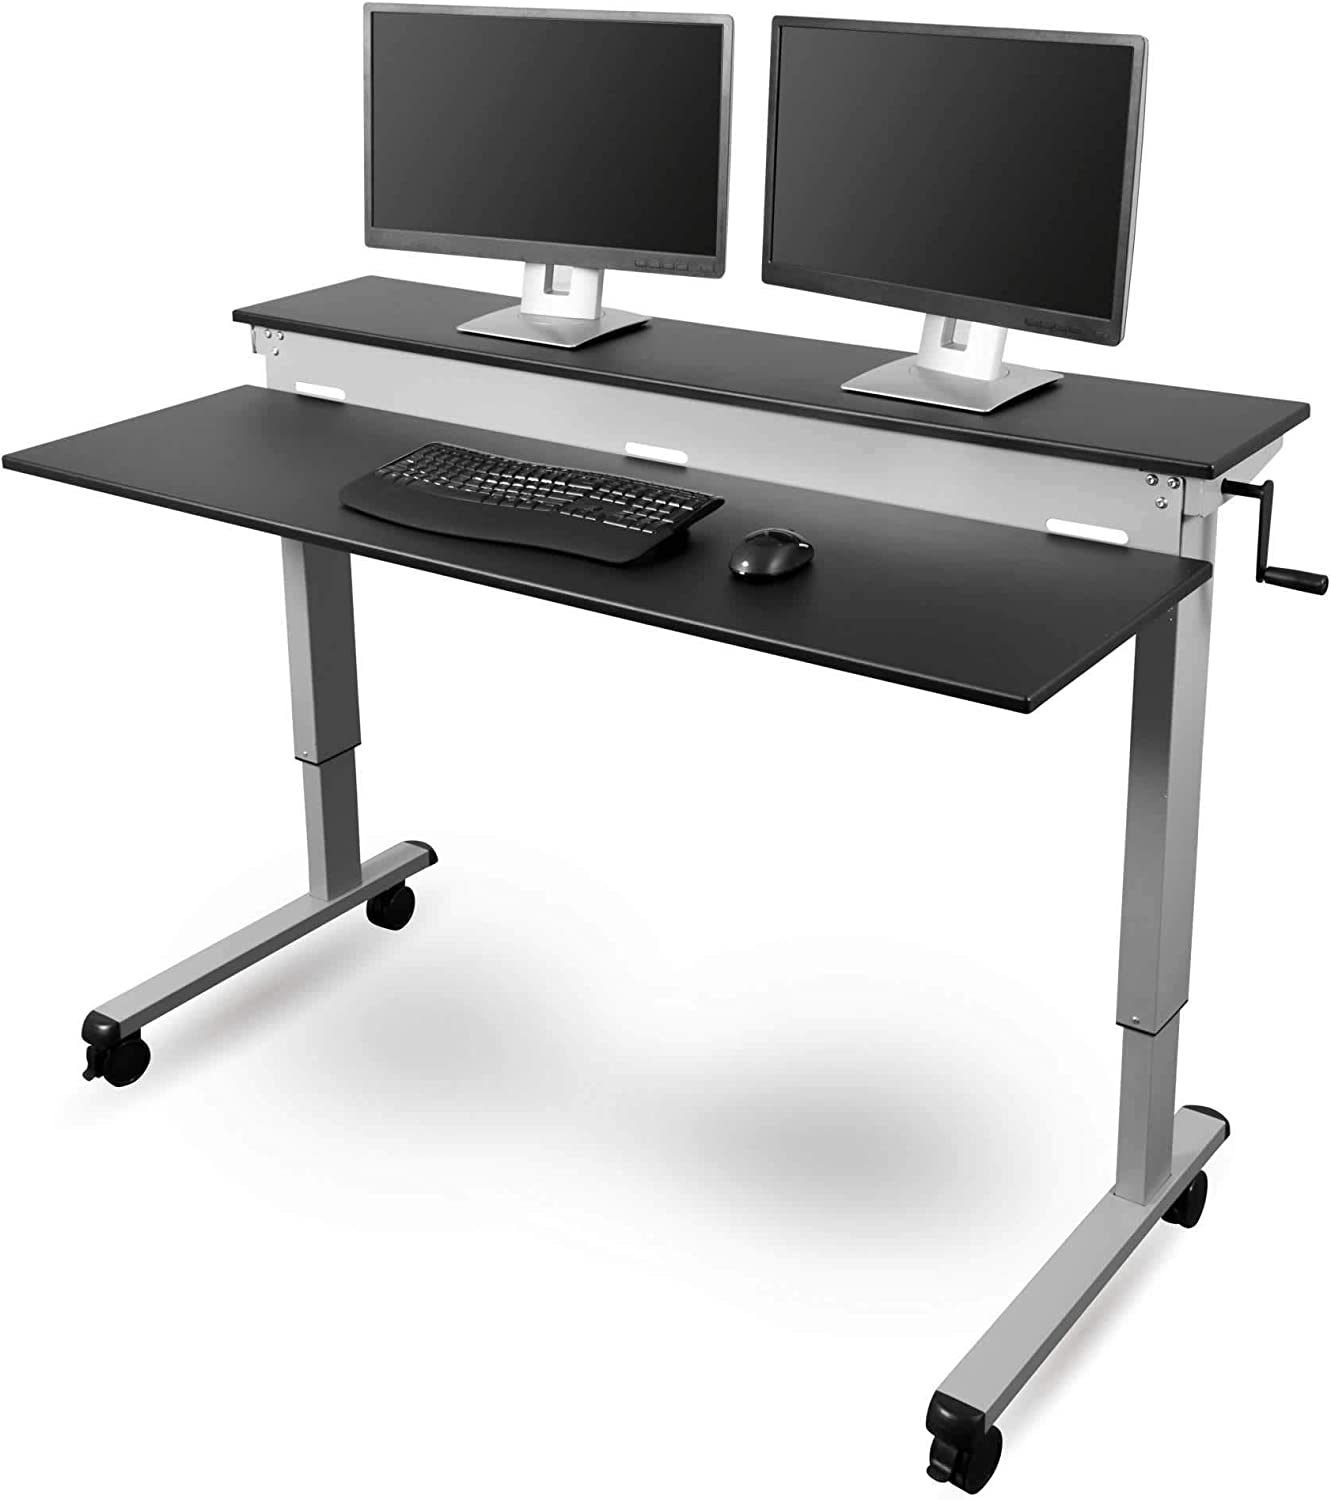 Amazon.com: Stand Up Desk Store Crank Adjustable Sit to Stand Up